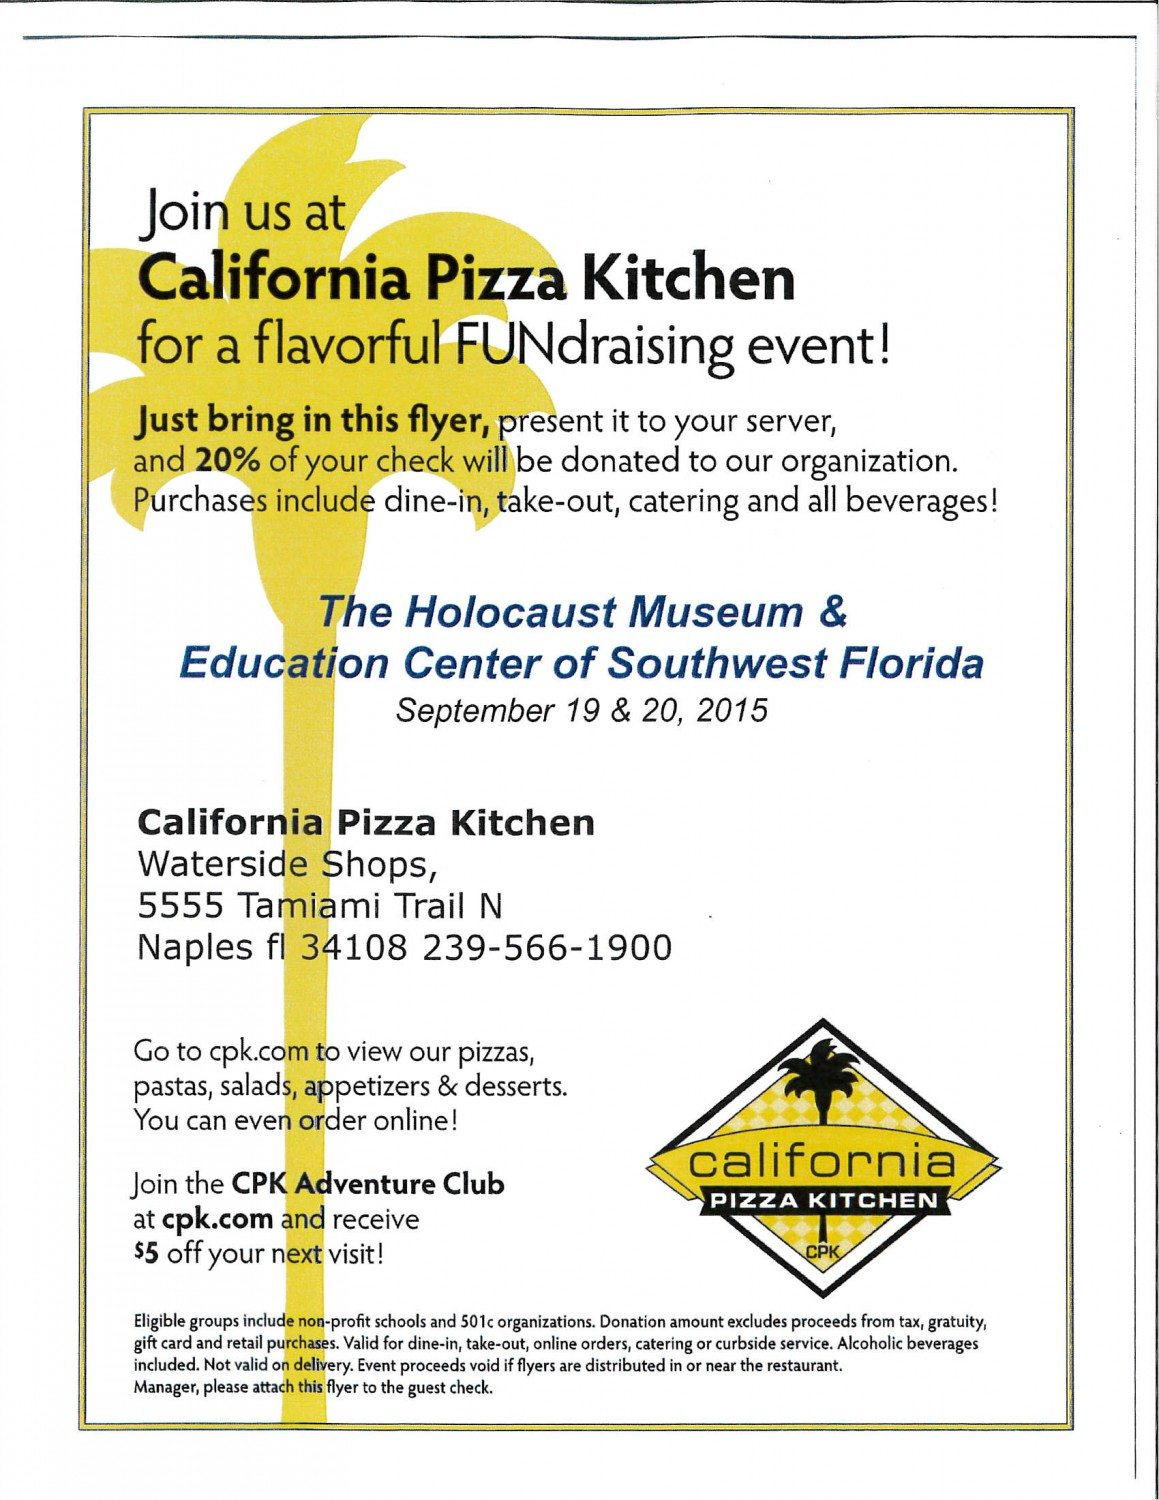 Print Out This Flyer And Bring With You To California Pizza Kitchen. Print  Out This Flyer And Bring With You To California Pizza Kitchen